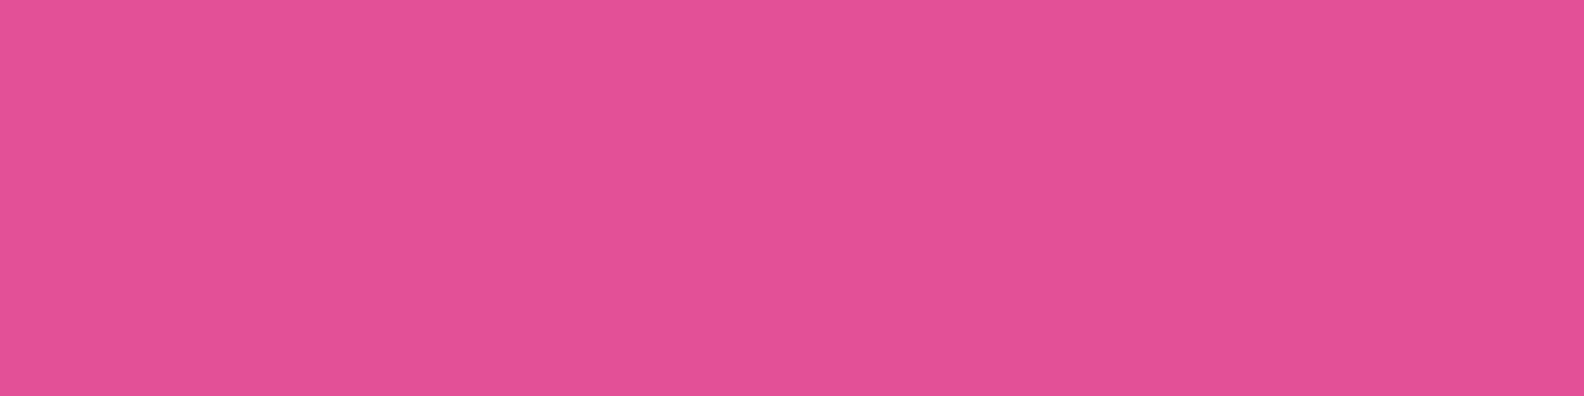 1584x396 Raspberry Pink Solid Color Background